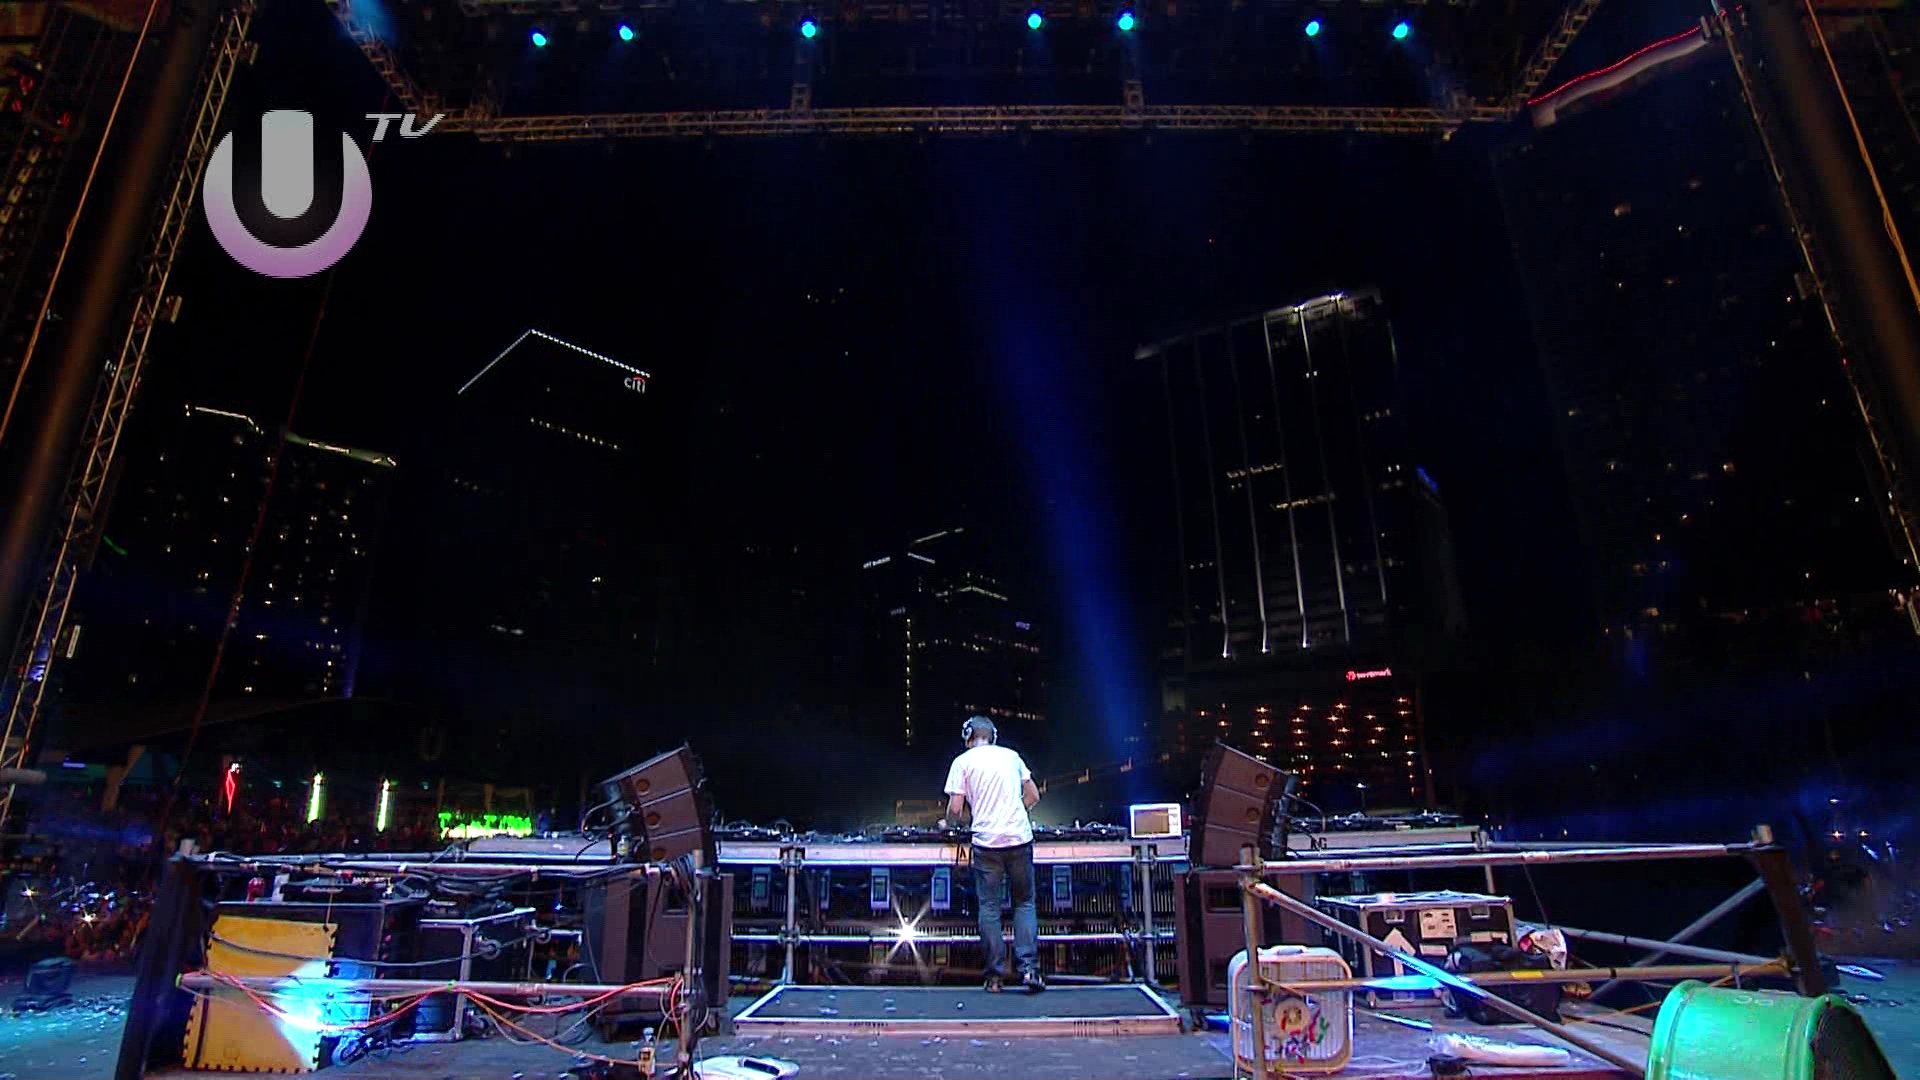 Armin van Buuren / LIVE in Miami USA 25 March / Ultra Music Festival (2012) HDTVRip